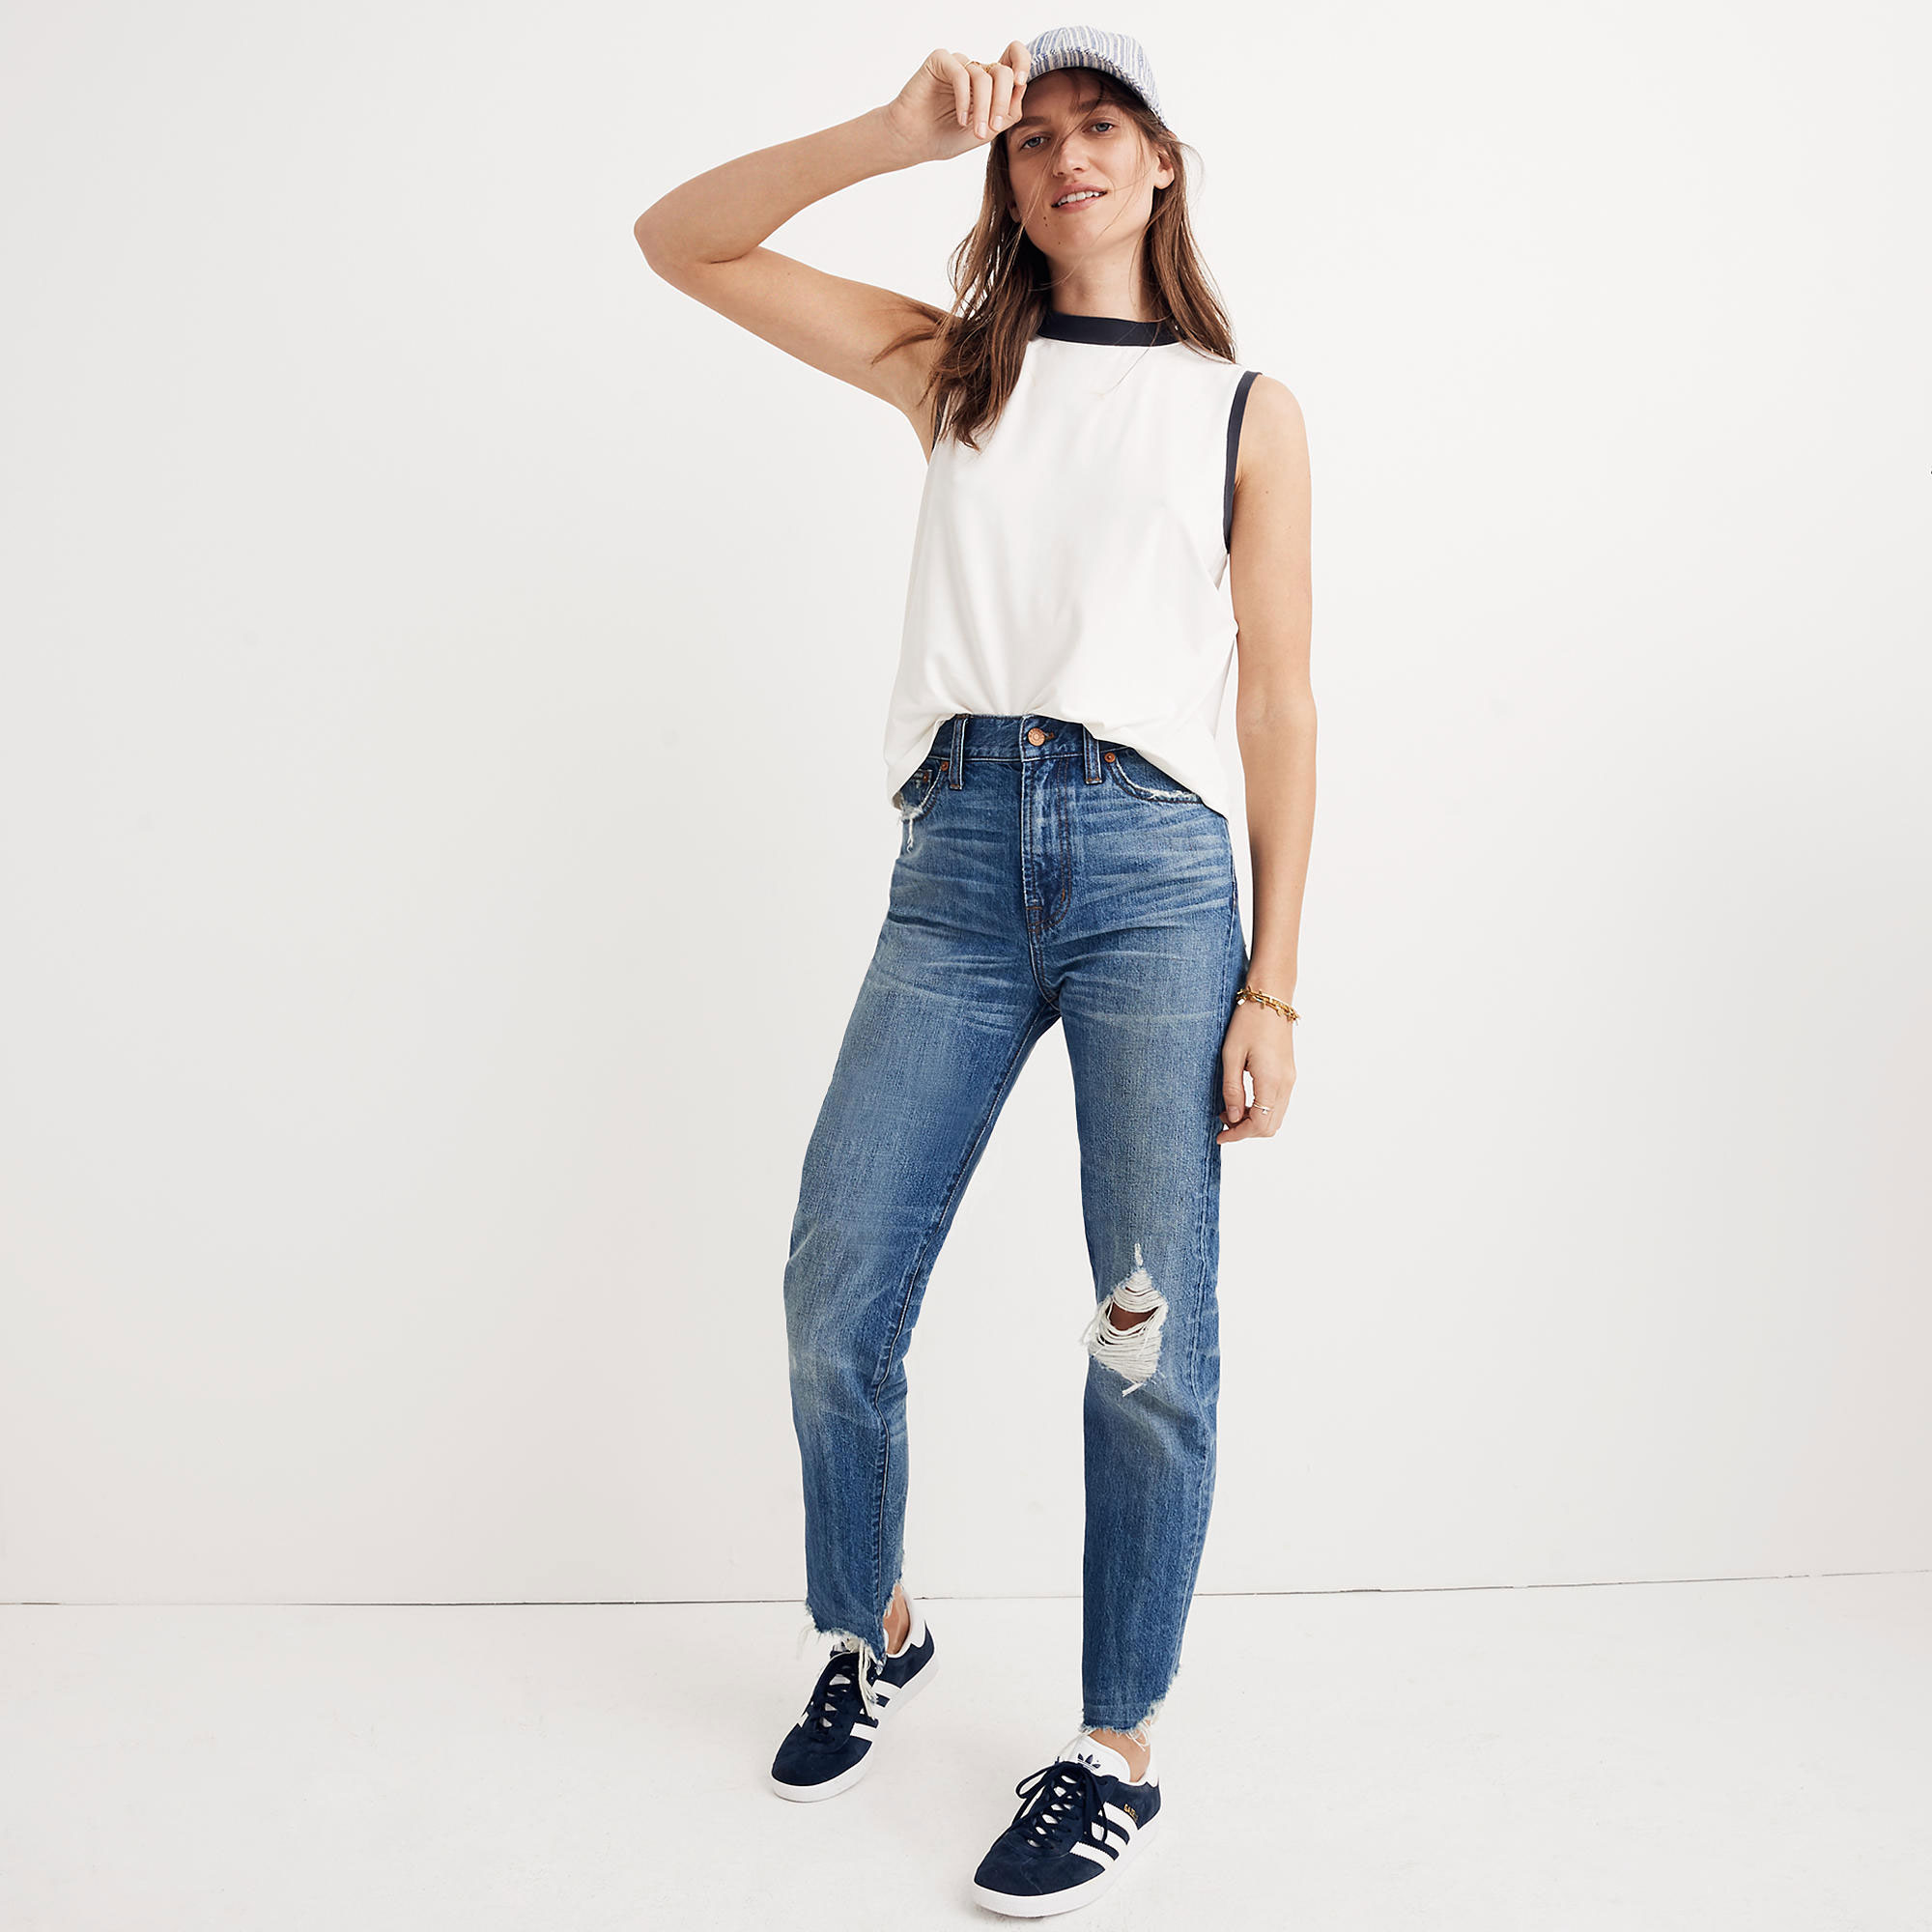 967d006d7b The Perfect Summer Jean: Destructed Edition. Distressed jeans. Distressed  jeans. madewell.com